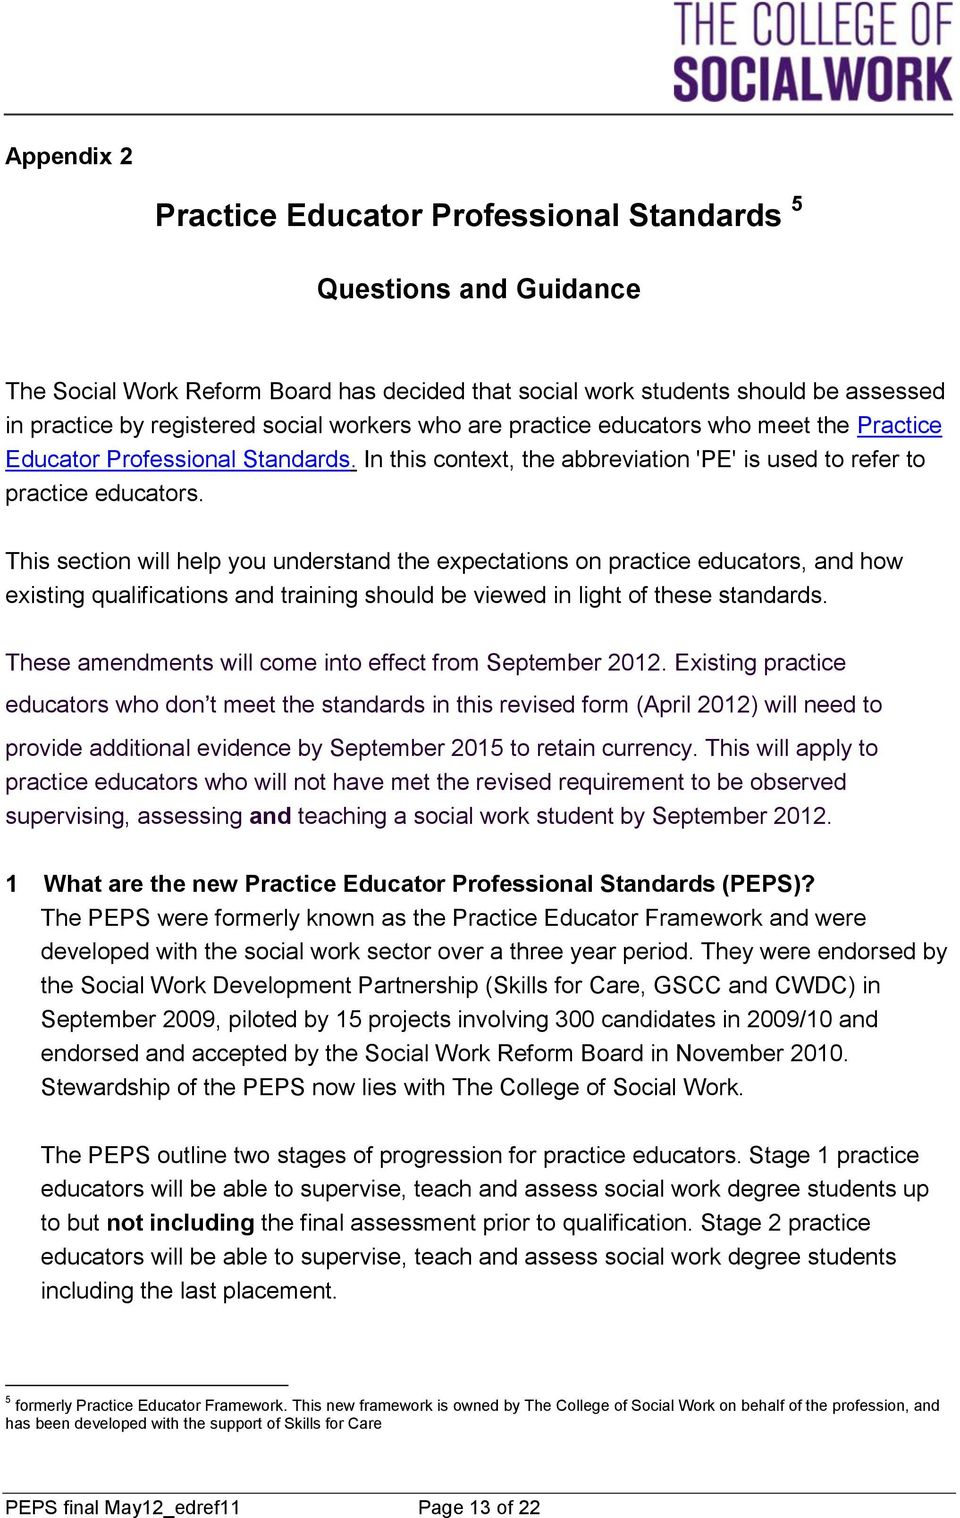 This section will help you understand the expectations on practice educators, and how existing qualifications and training should be viewed in light of these standards.